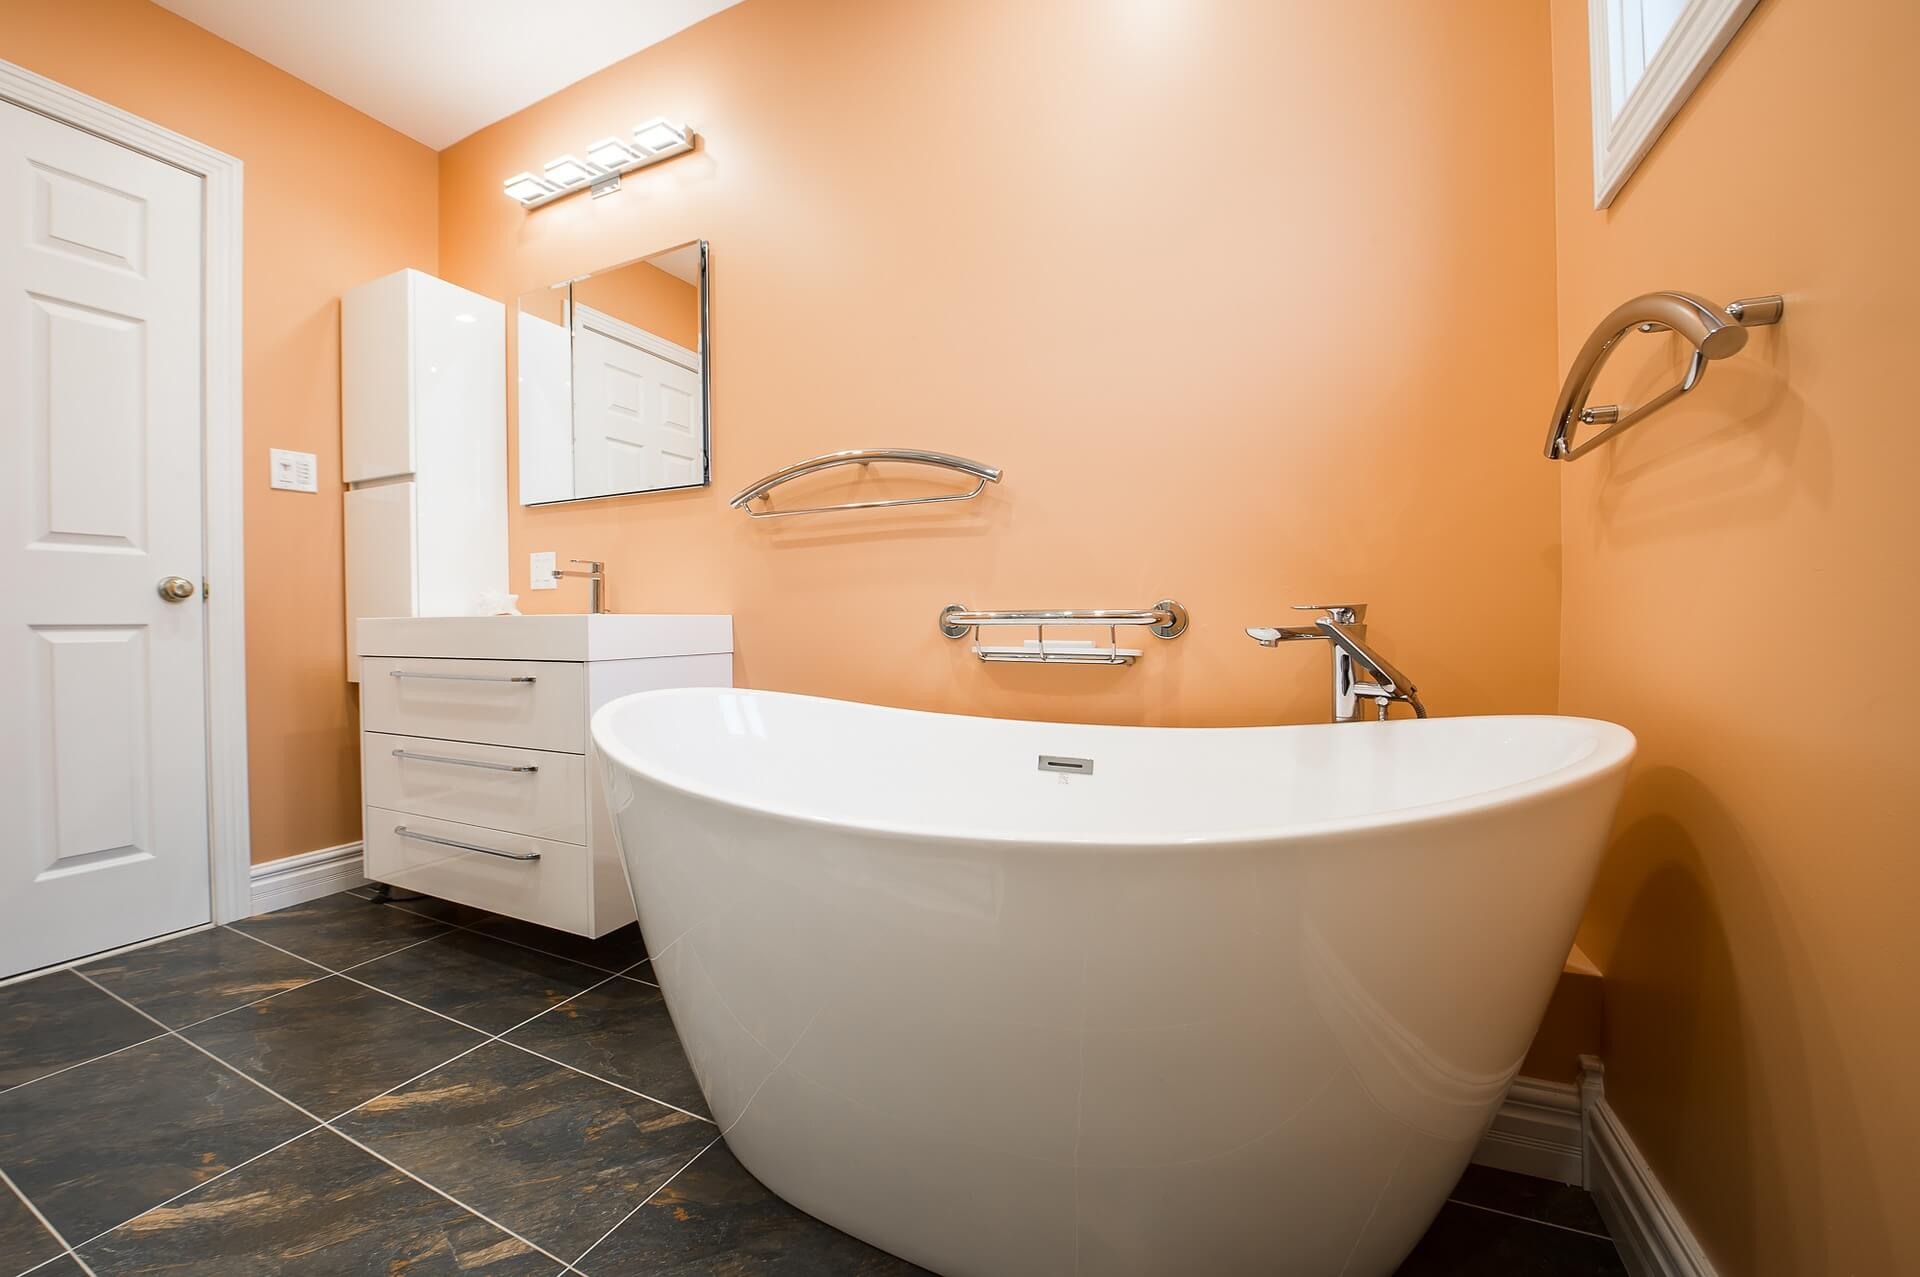 The key elements of a perfect master bathroom archiweb 3 0 for Perfect master bathroom